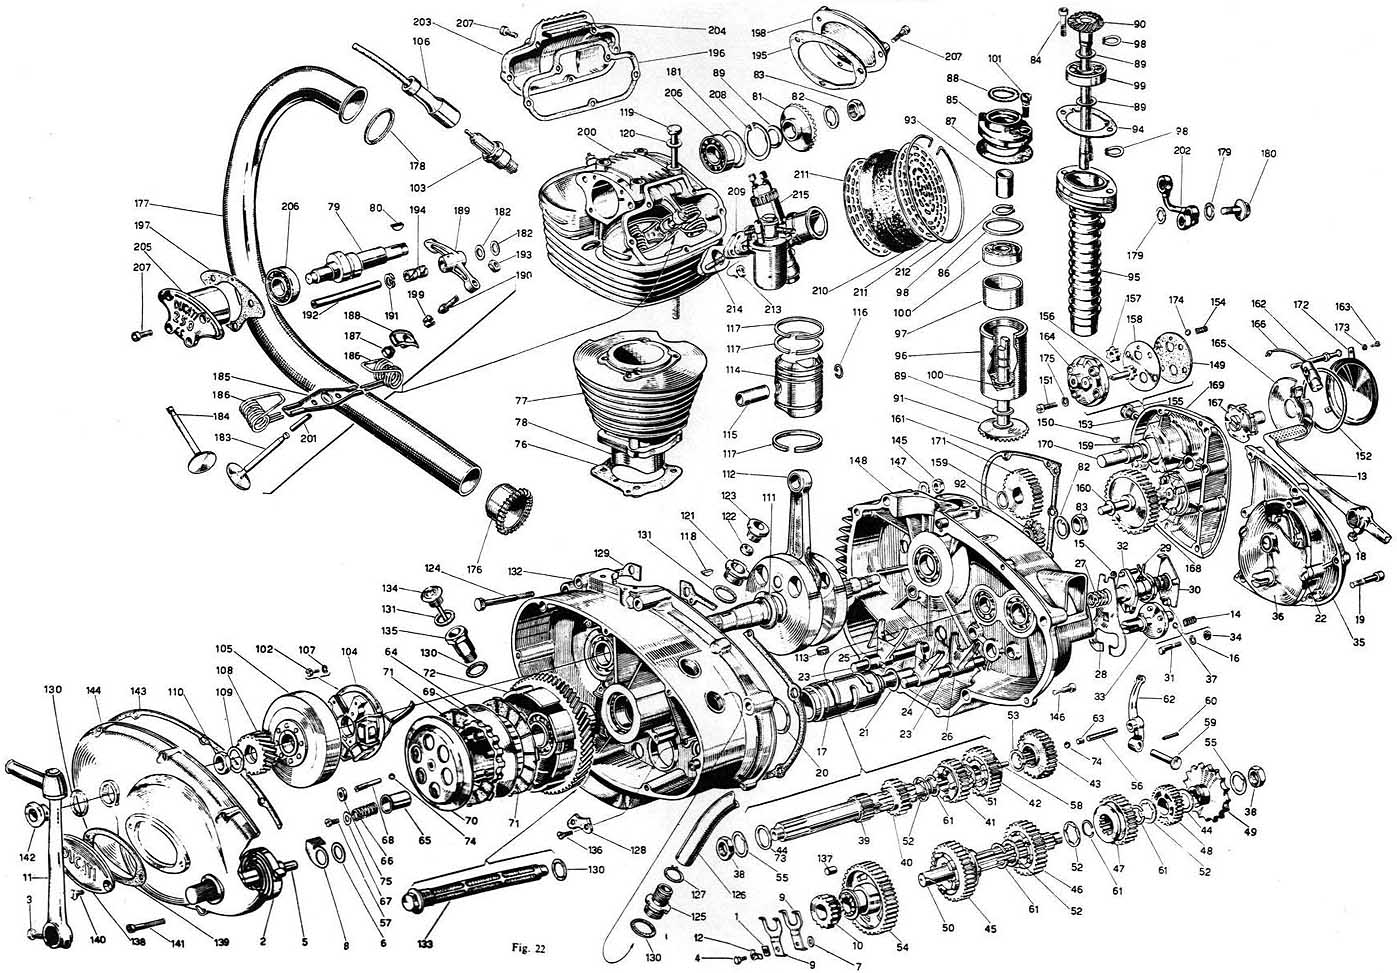 barking mad speed shop these are great diagrams rh barkingmadspeedshop com  1972 honda cb350 engine diagram